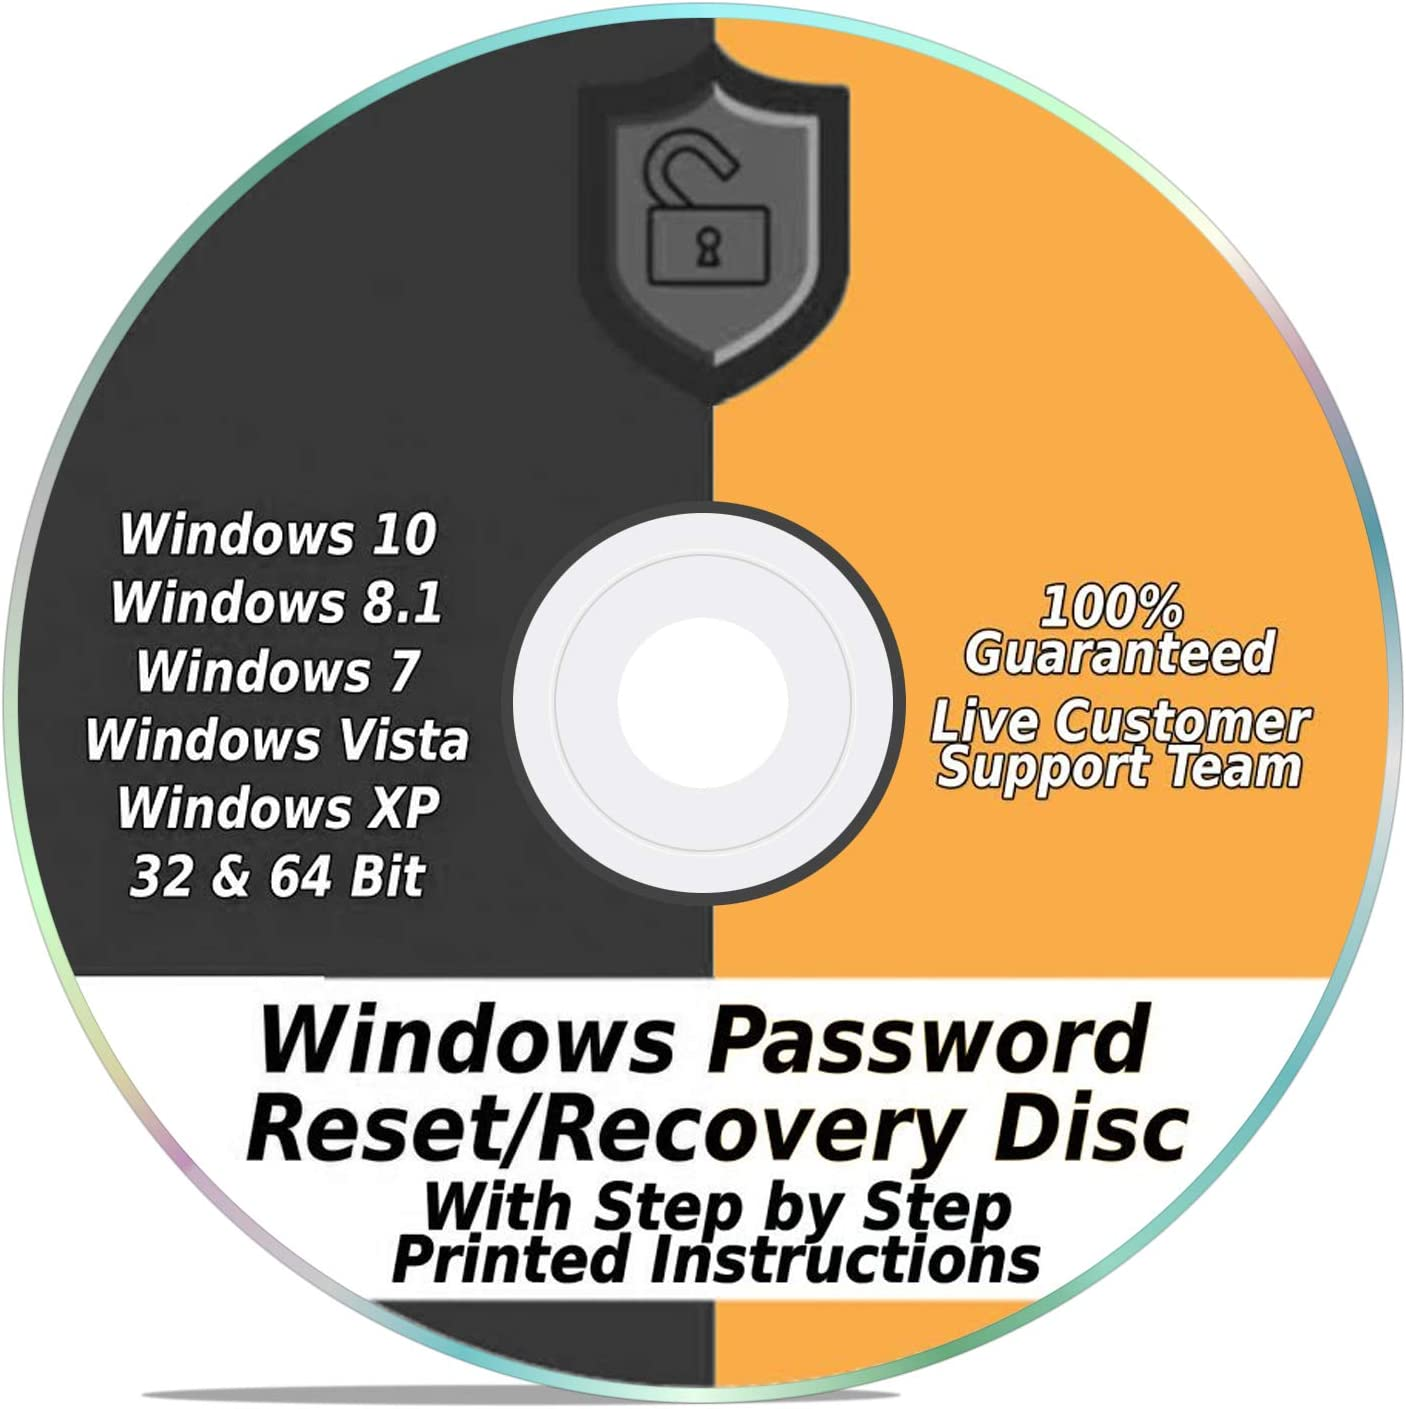 Windows Password Reset Recovery Disk Windows 10, 8.1, 7, Vista, XP #1 Best Unlocker Remove Software CD DVD (For All PC Computers)